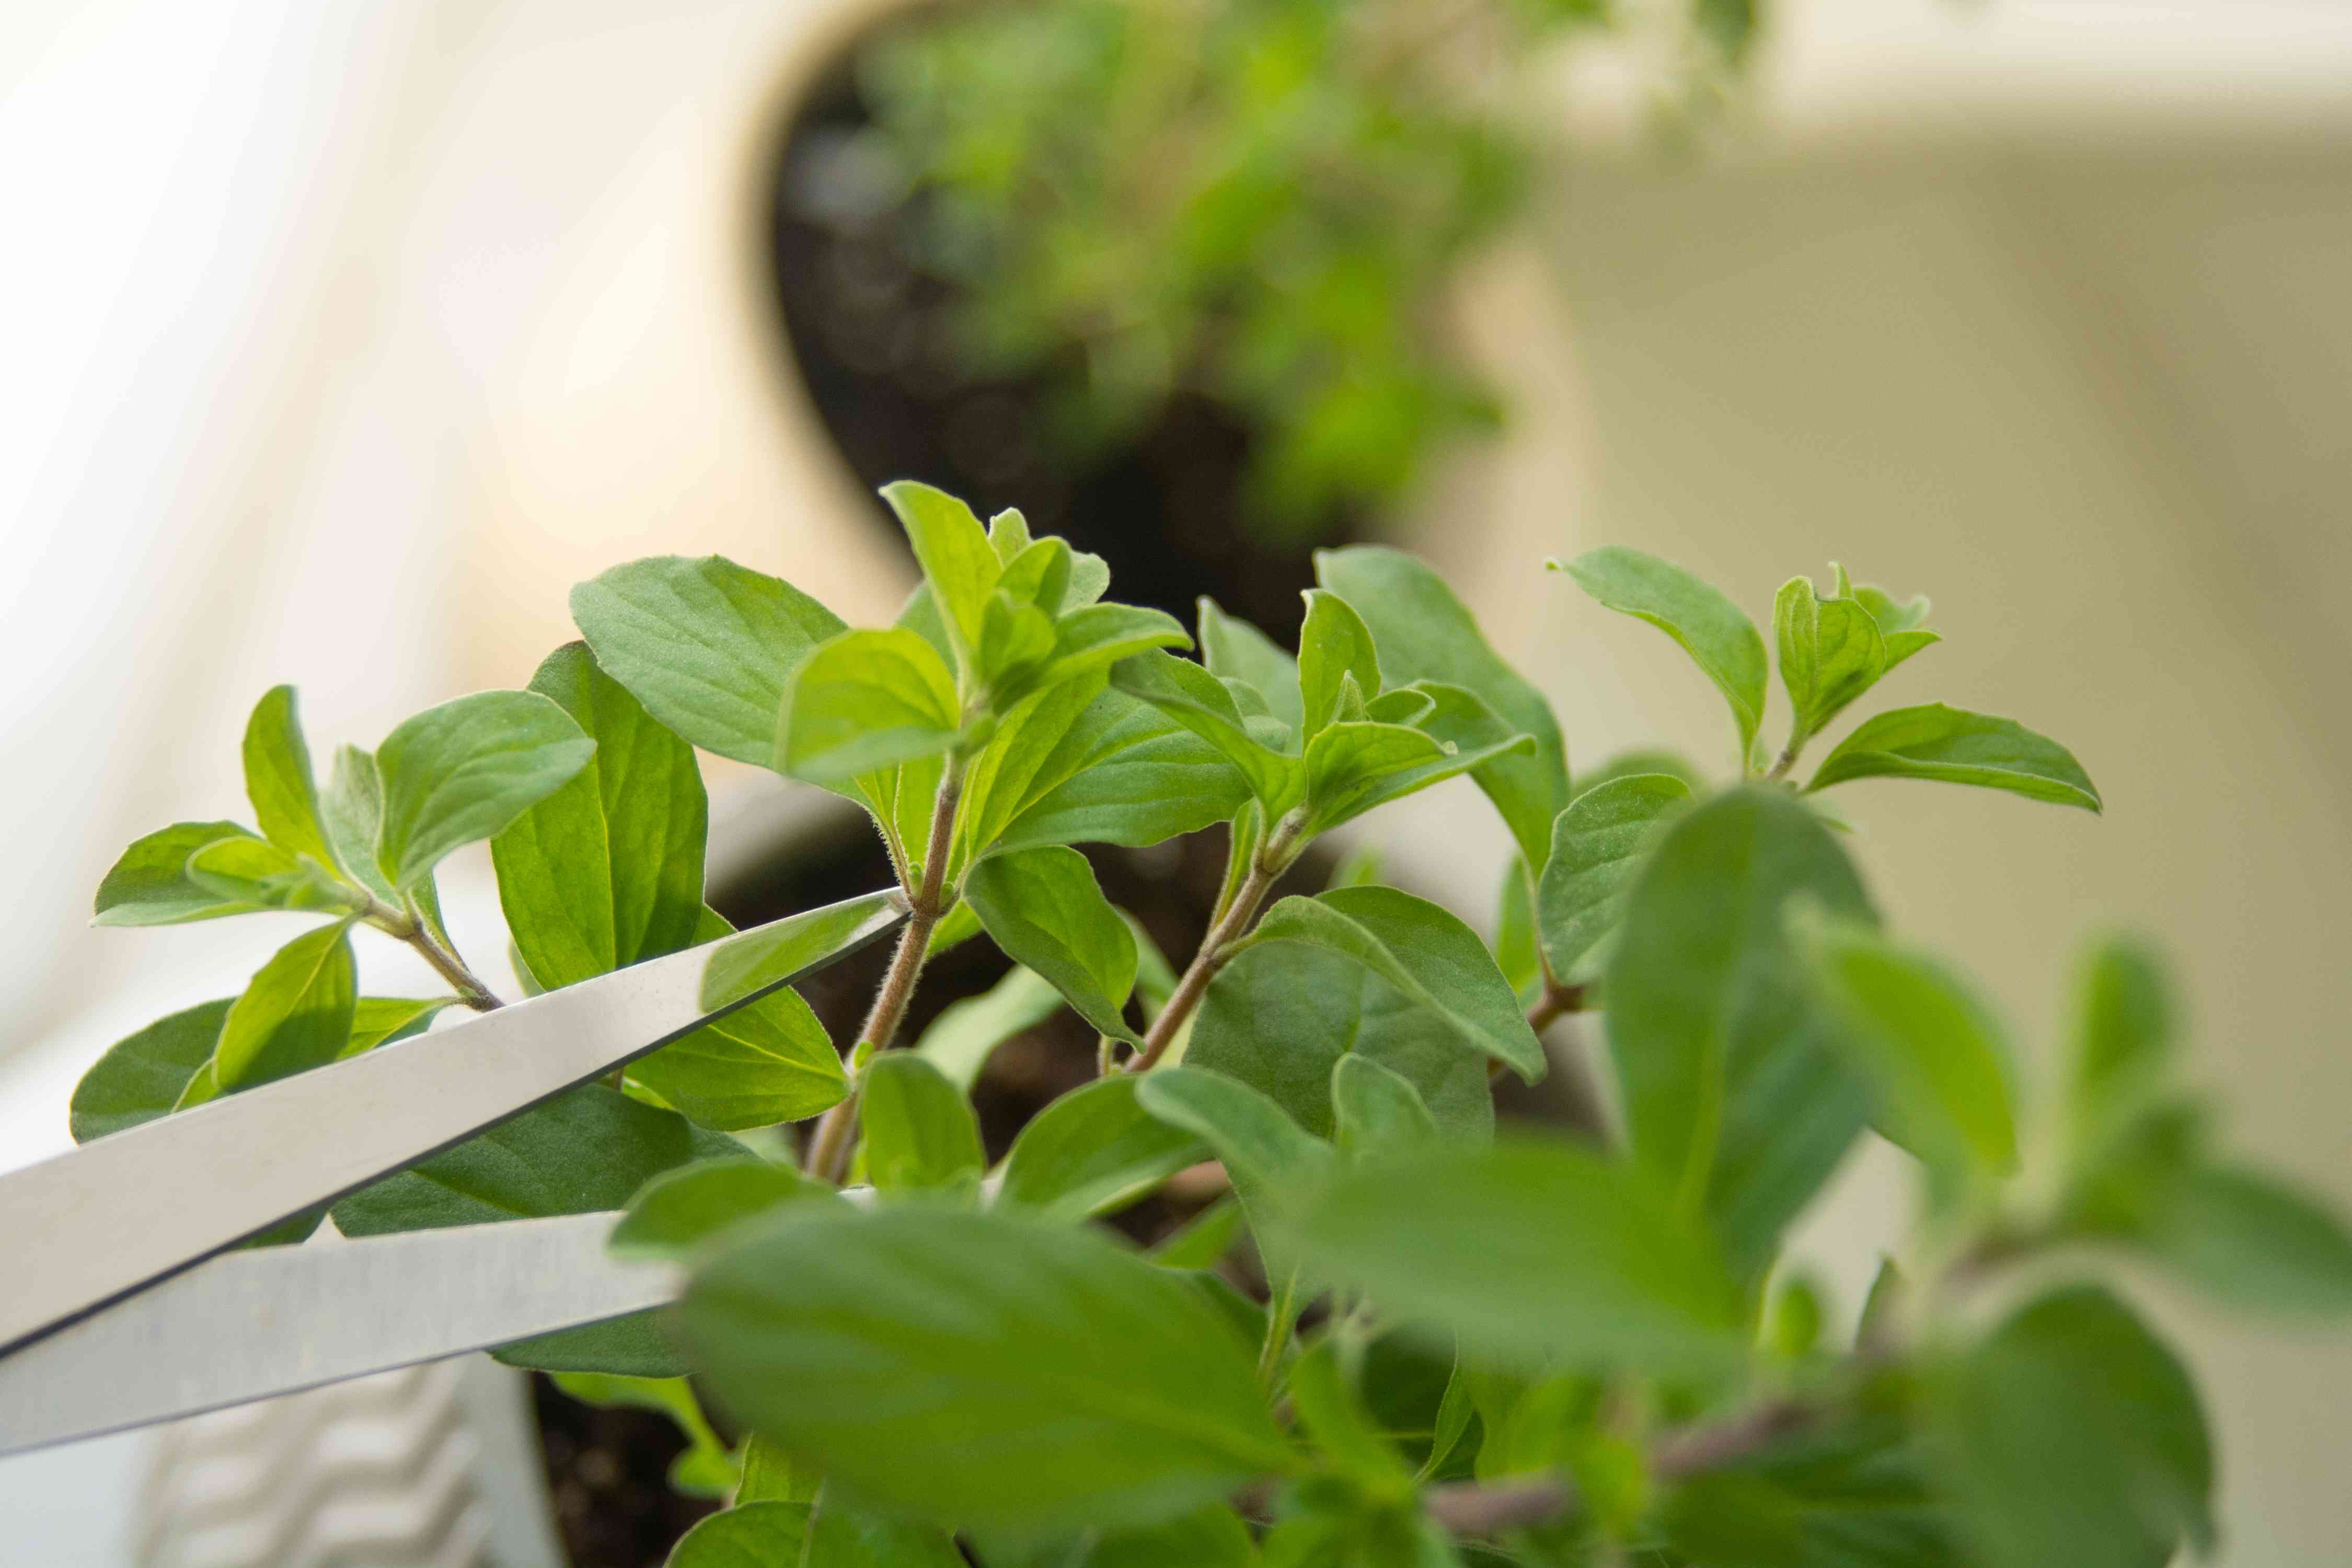 Sweet marjoram her plant being cut from top stems with scissors closeup